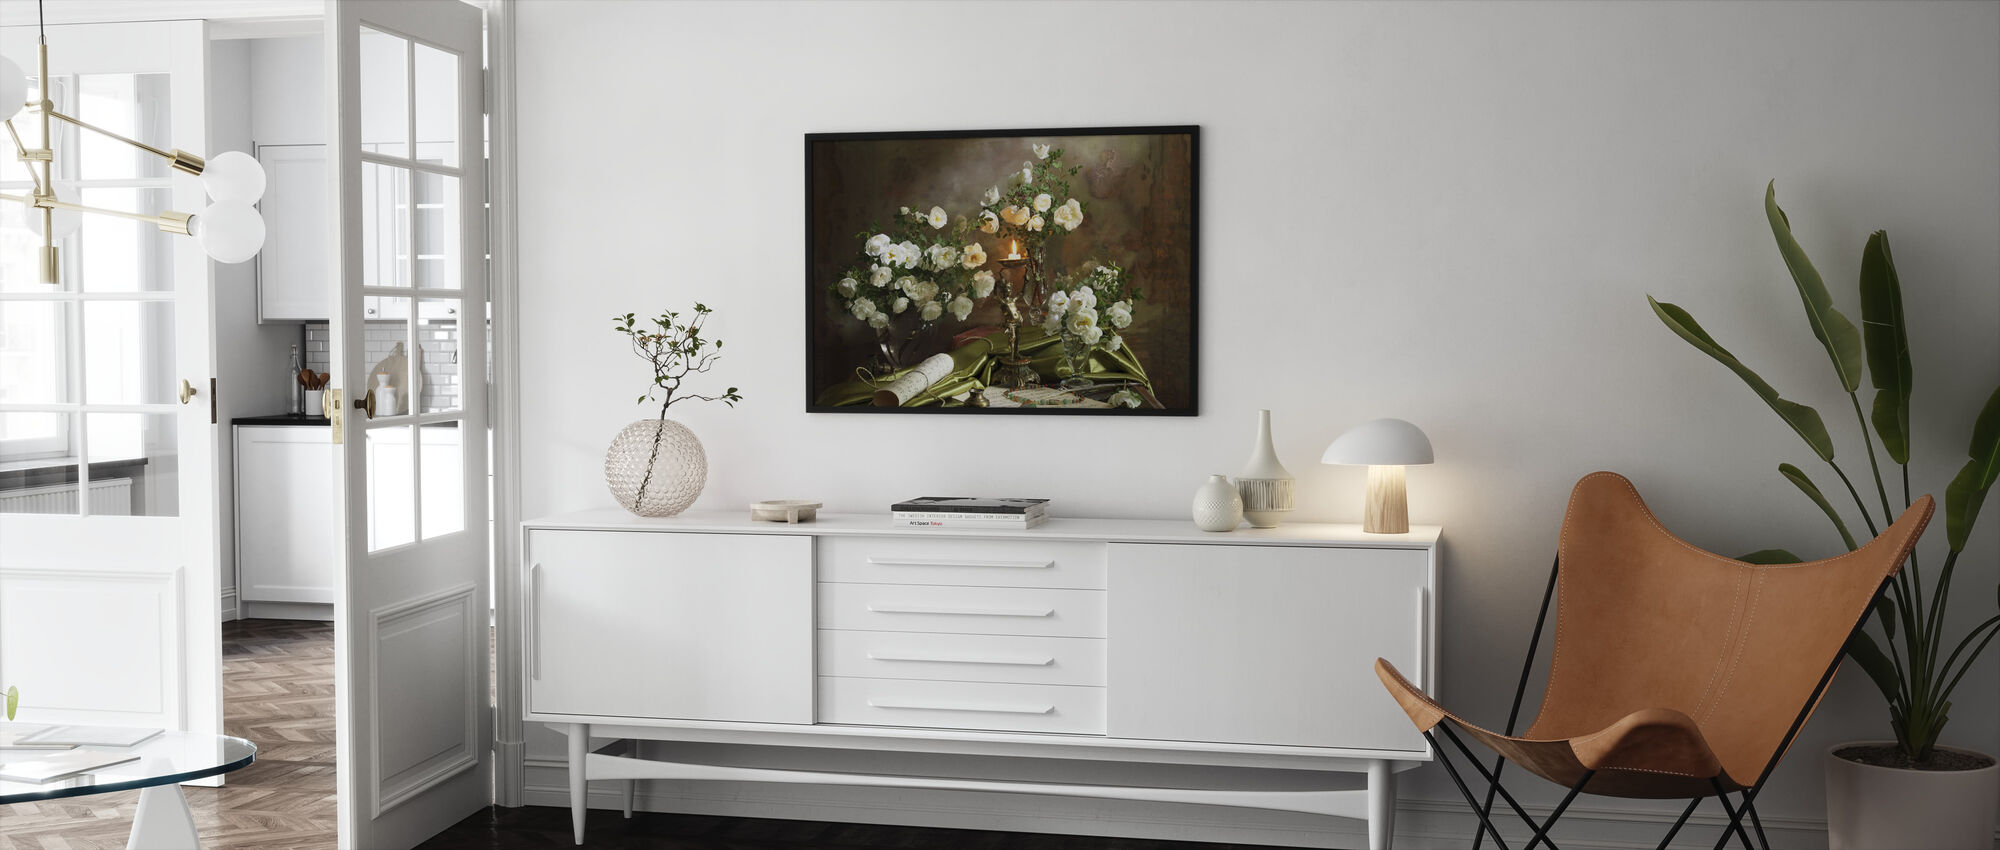 Still Life with Roses and Candle - Framed print - Living Room